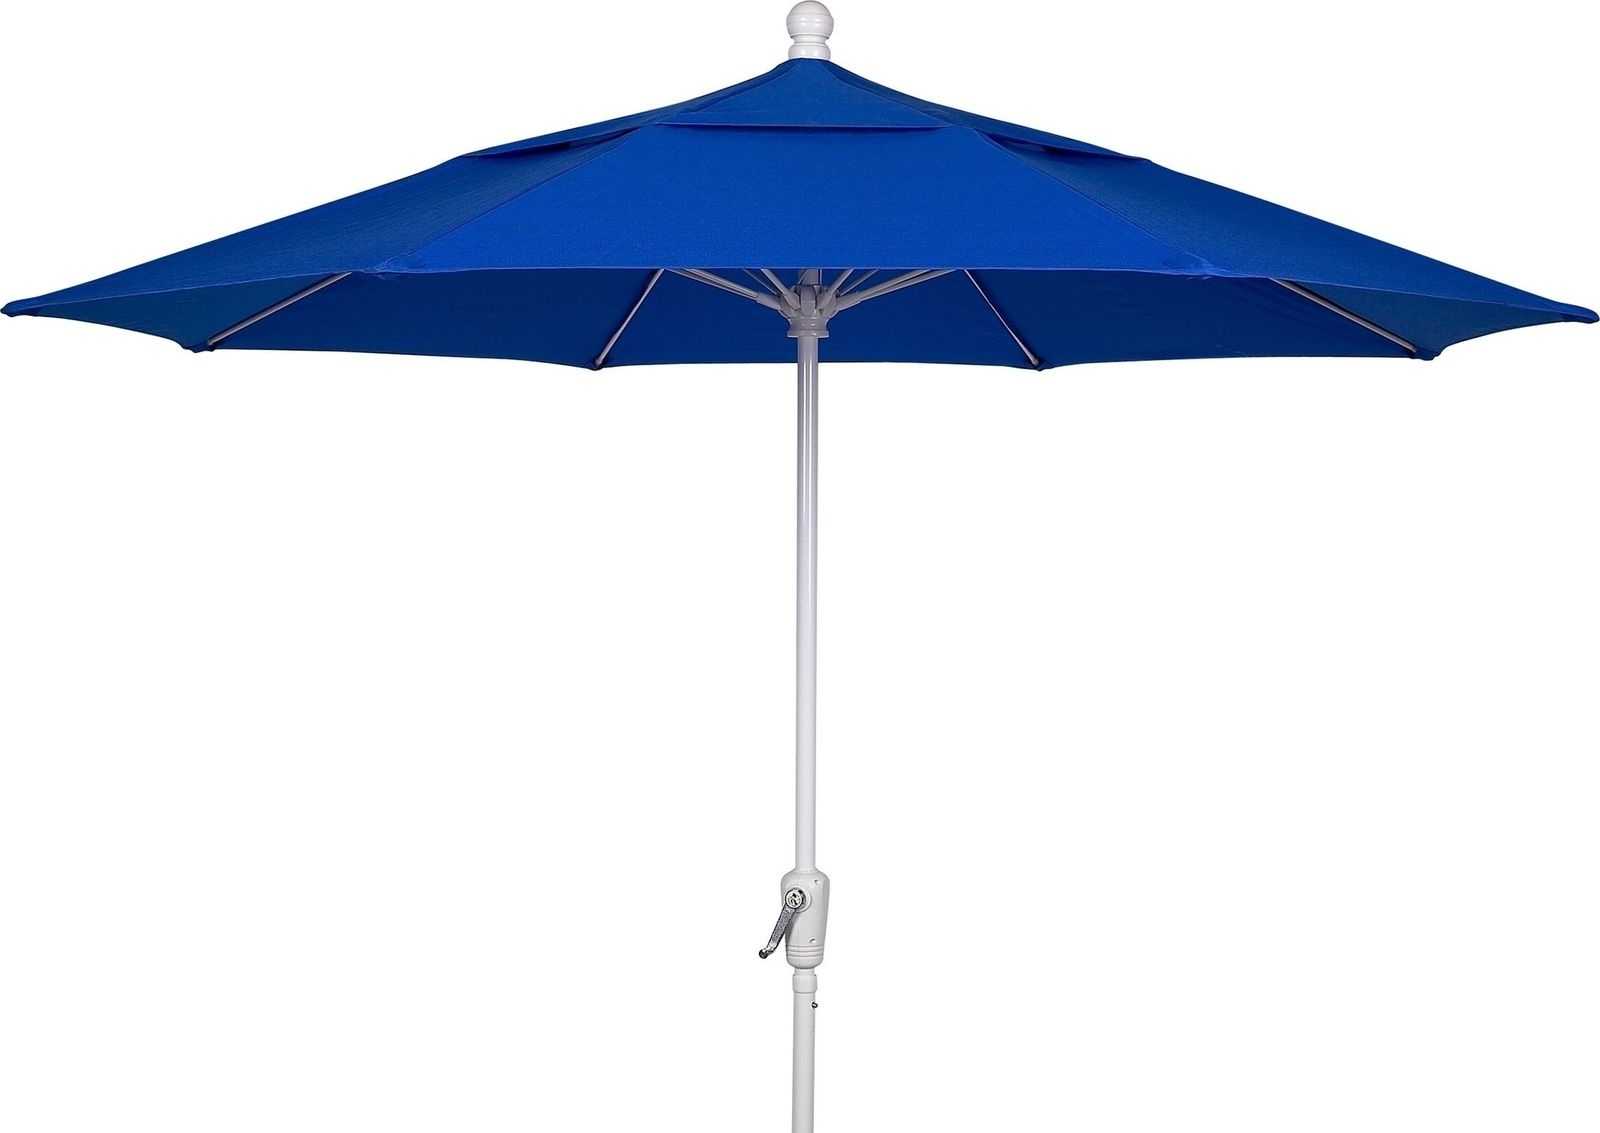 Fiberbuilt Umbrellas Patio Umbrella 7.5 Foot Pacific Blue Canopy And With Latest Patio Umbrellas With White Pole (Gallery 8 of 20)